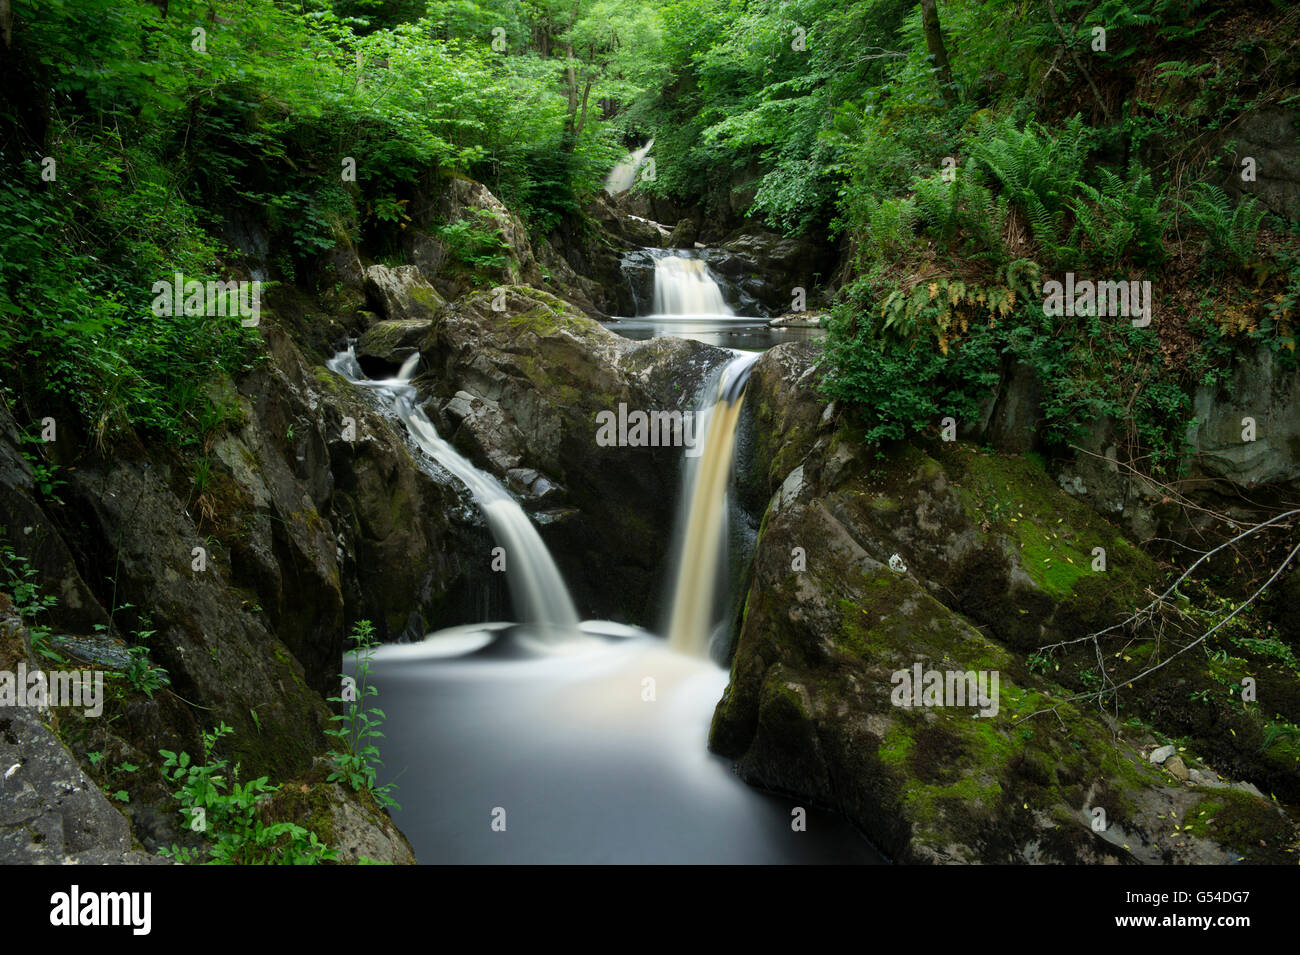 A long exposure of Pecca Falls on the River Twiss along the Ingleton Waterfall Trail in the North Yorkshire Dales - Stock Image